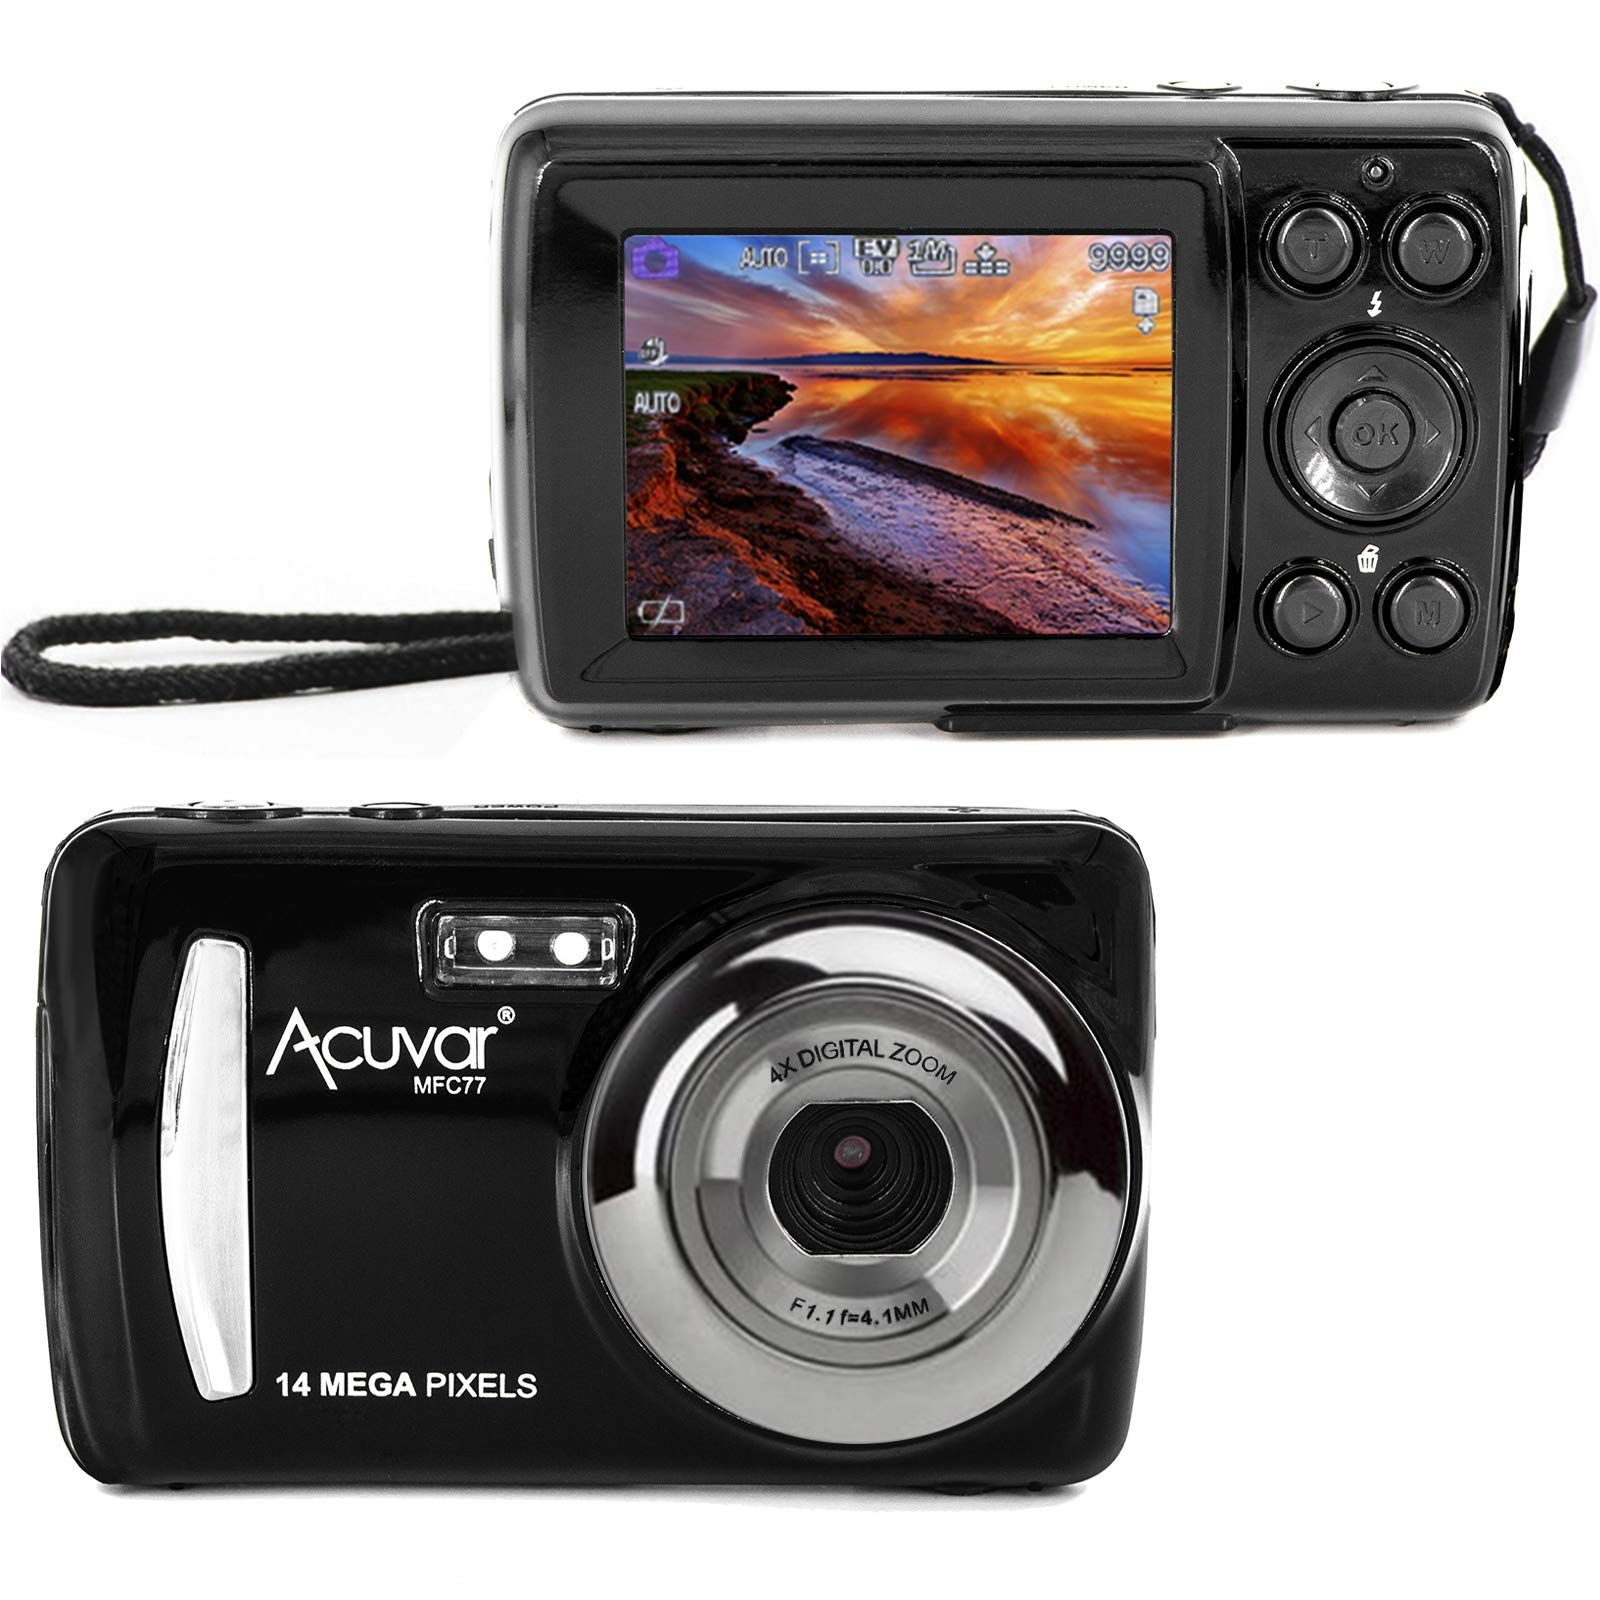 Acuvar 14MP Megapixel Compact Digital Camera and Video with 2.4'' Screen and USB Cable by Acuvar